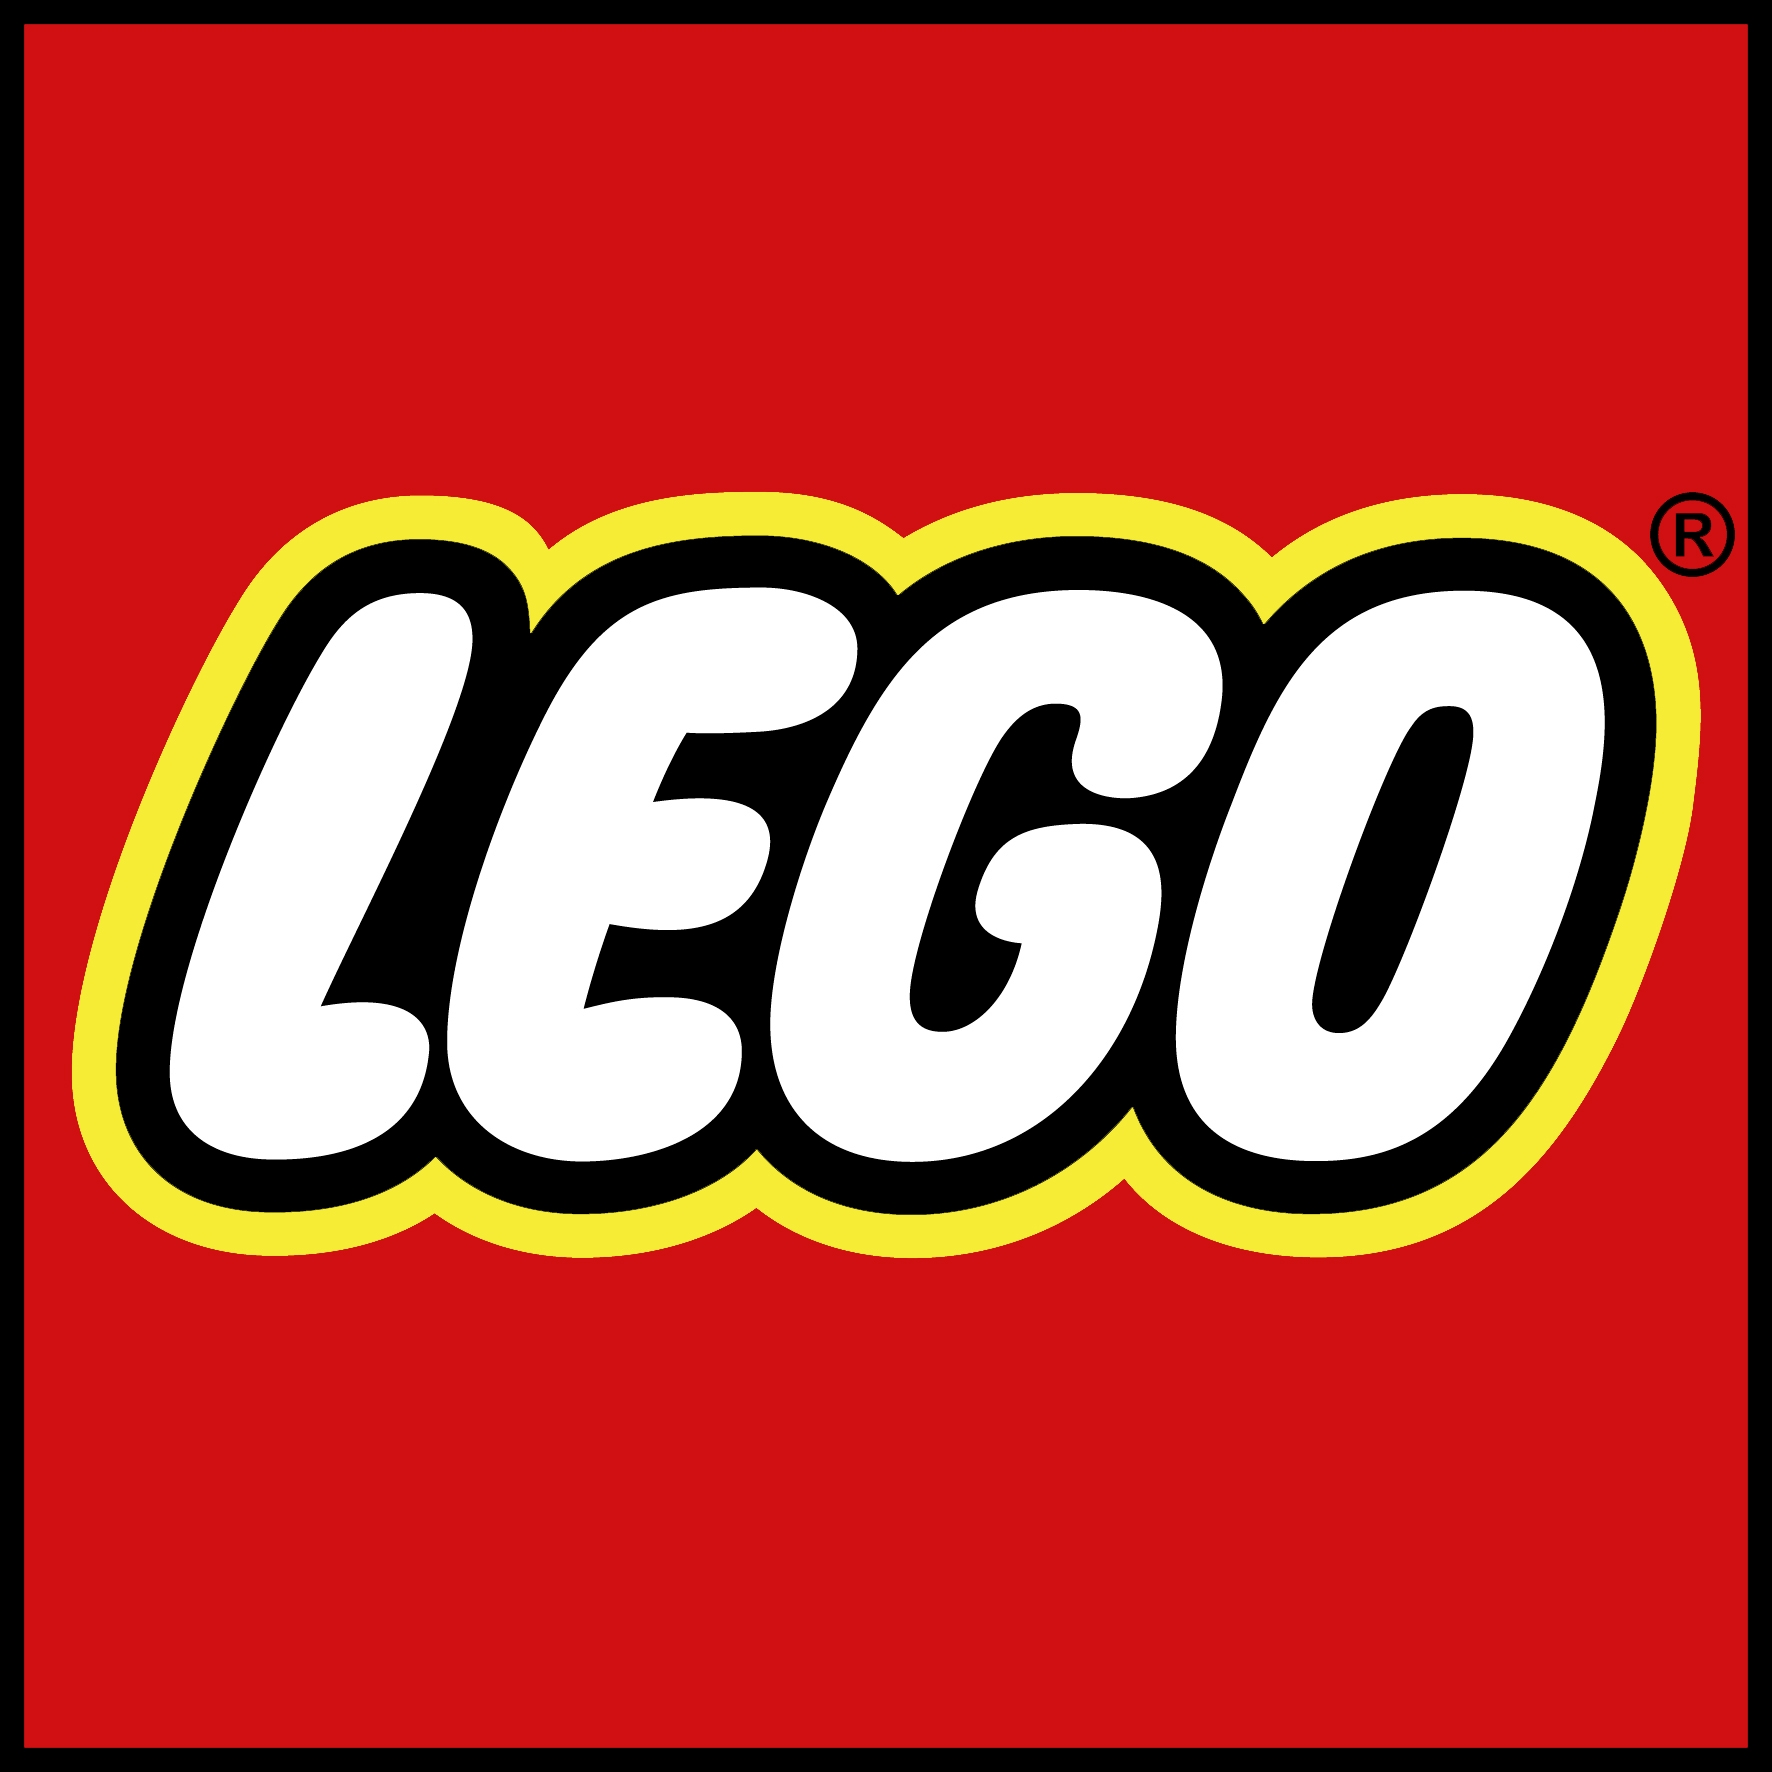 http://images2.wikia.nocookie.net/__cb20110105142758/lego/images/2/2d/LEGO_logo.jpg